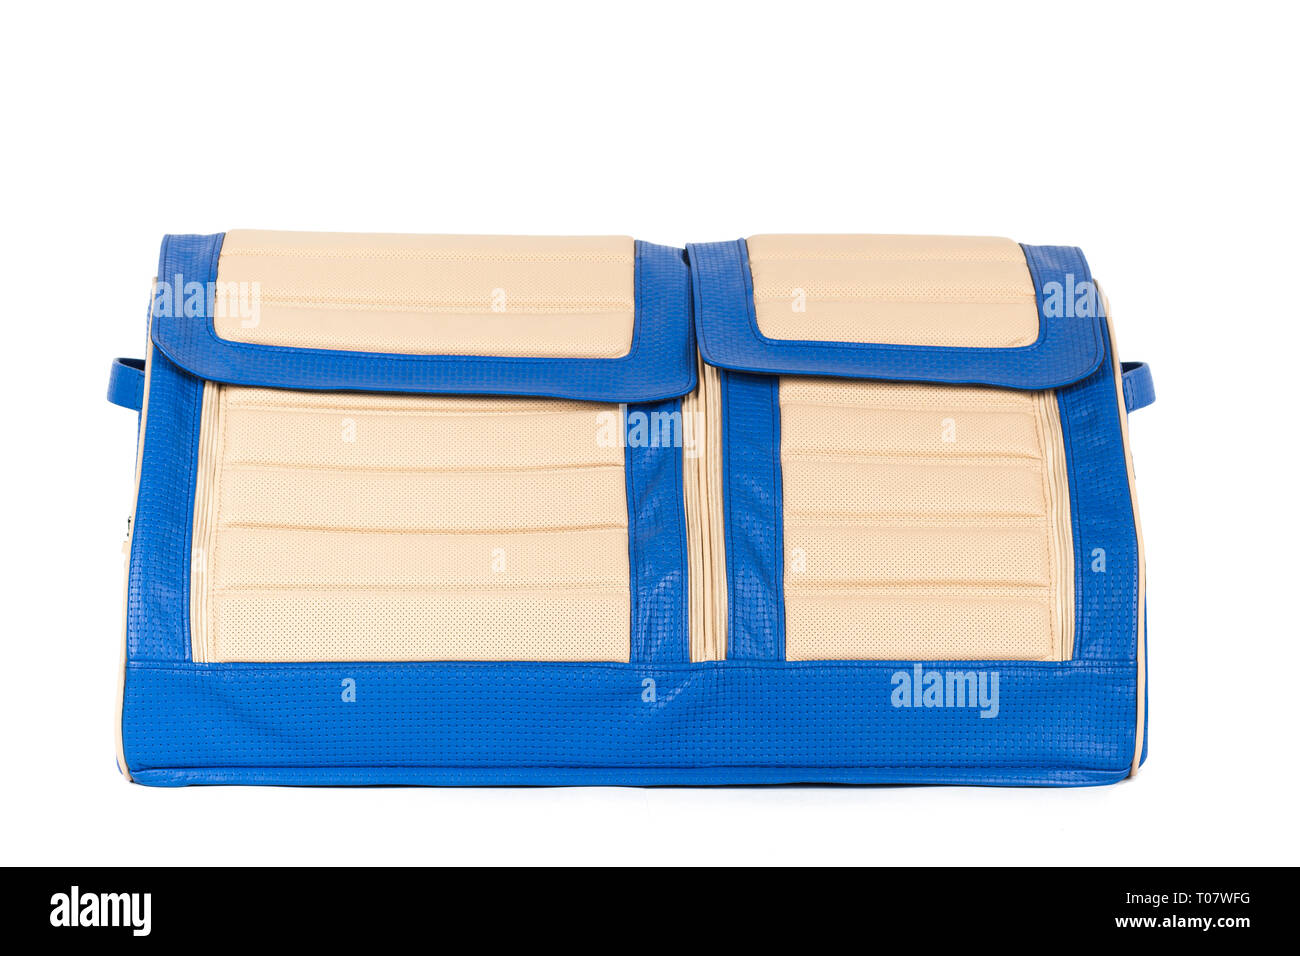 Blue-beige leather bag for storing things and traveling in the trunk of a car on a white isolated background. Luggage, handmade suitcase - Stock Image